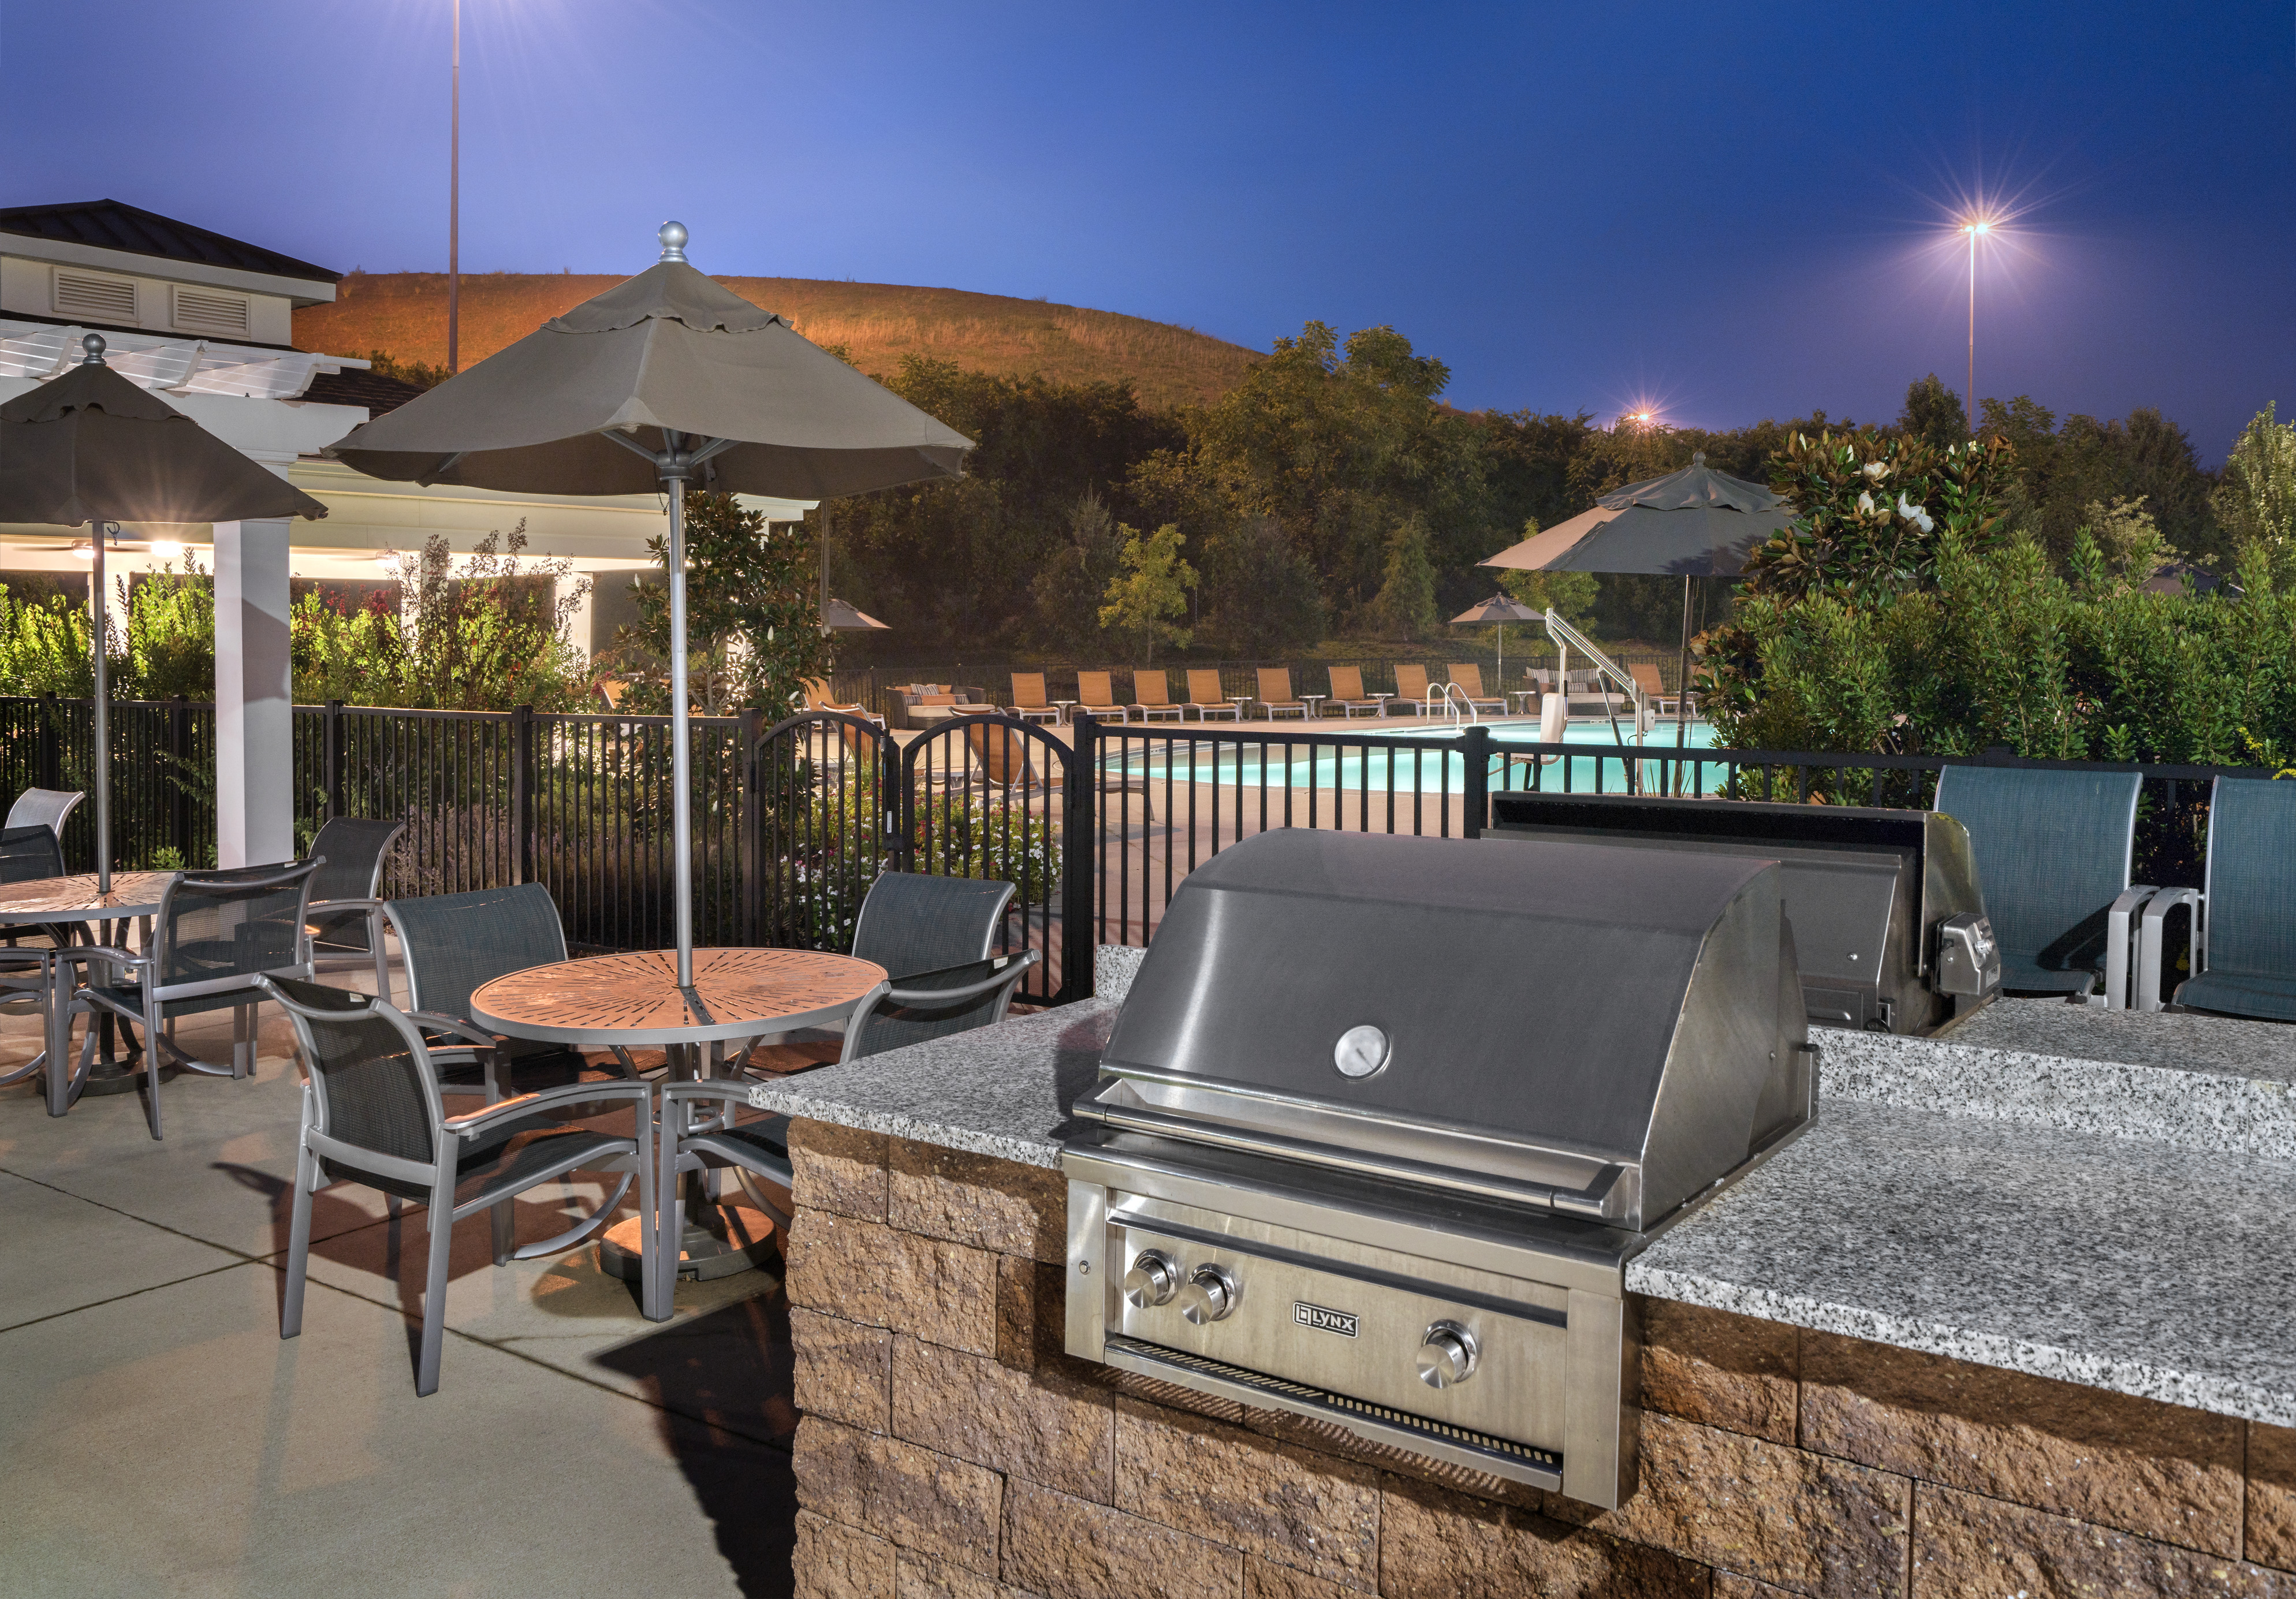 Grilling area and a pool in an apartment complex.